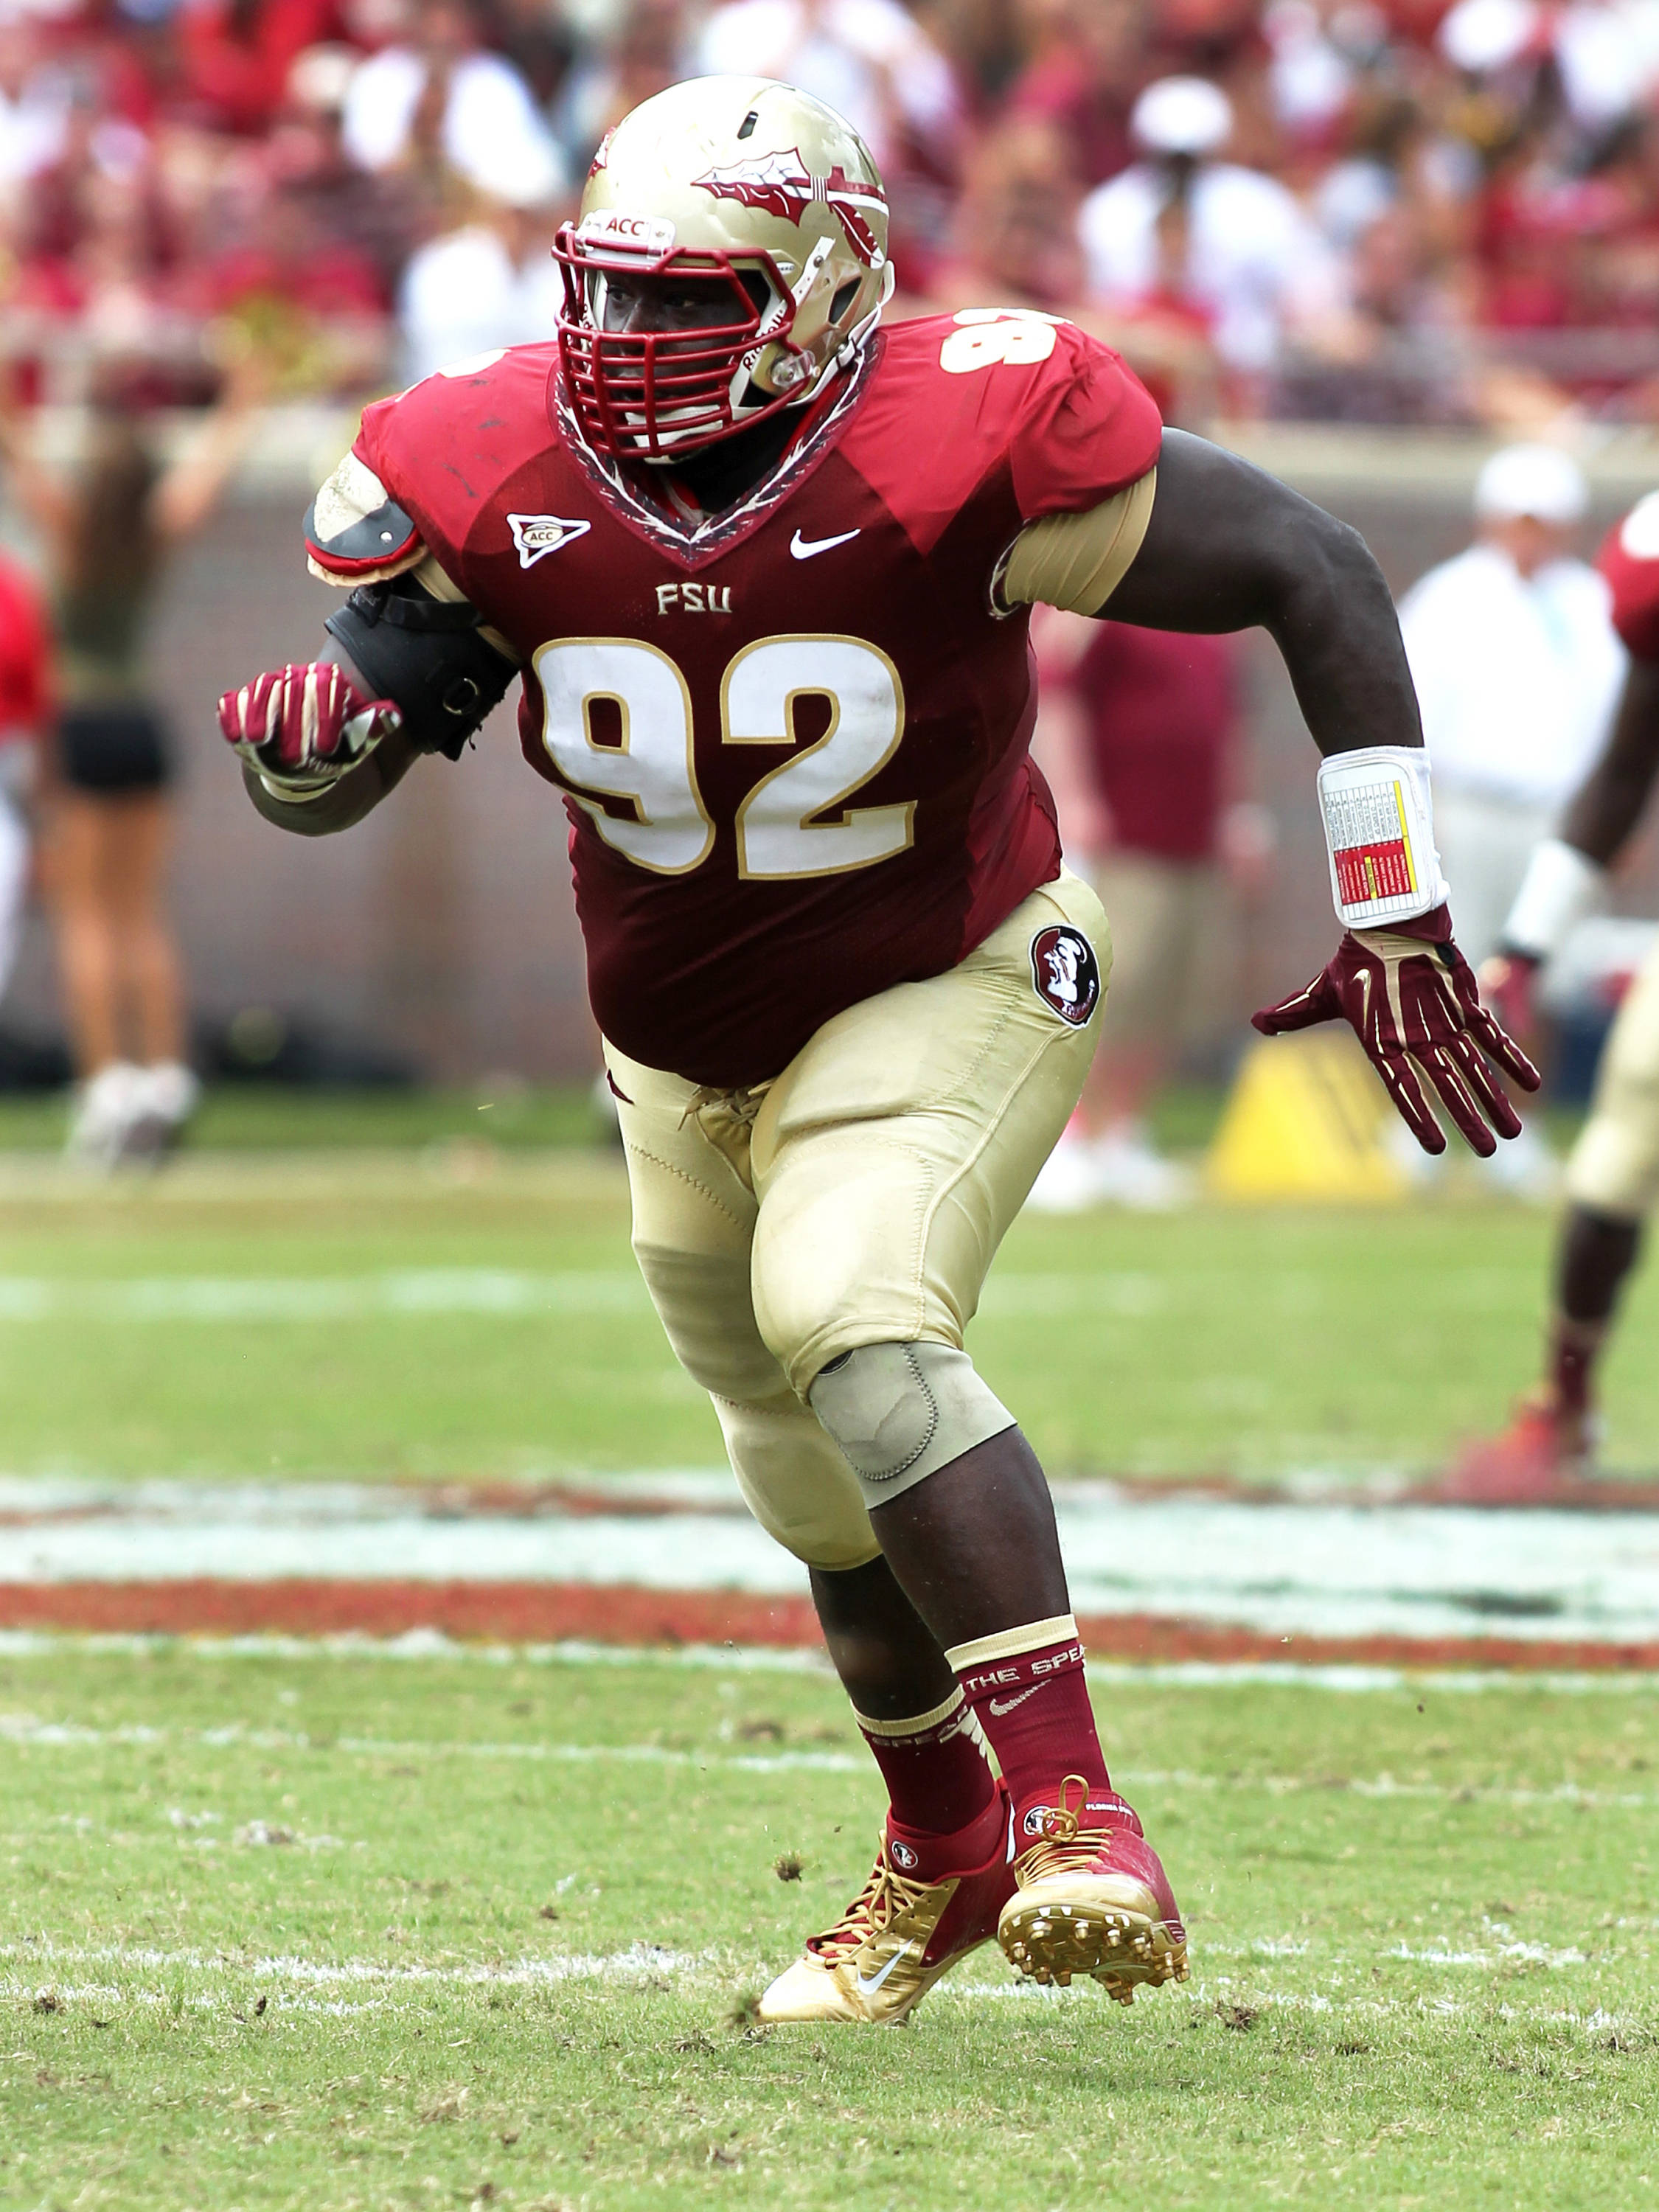 Anthony McCloud (92) on a rush, FSU vs Wake Forest, 9/15/12 (Photo by Steve Musco)